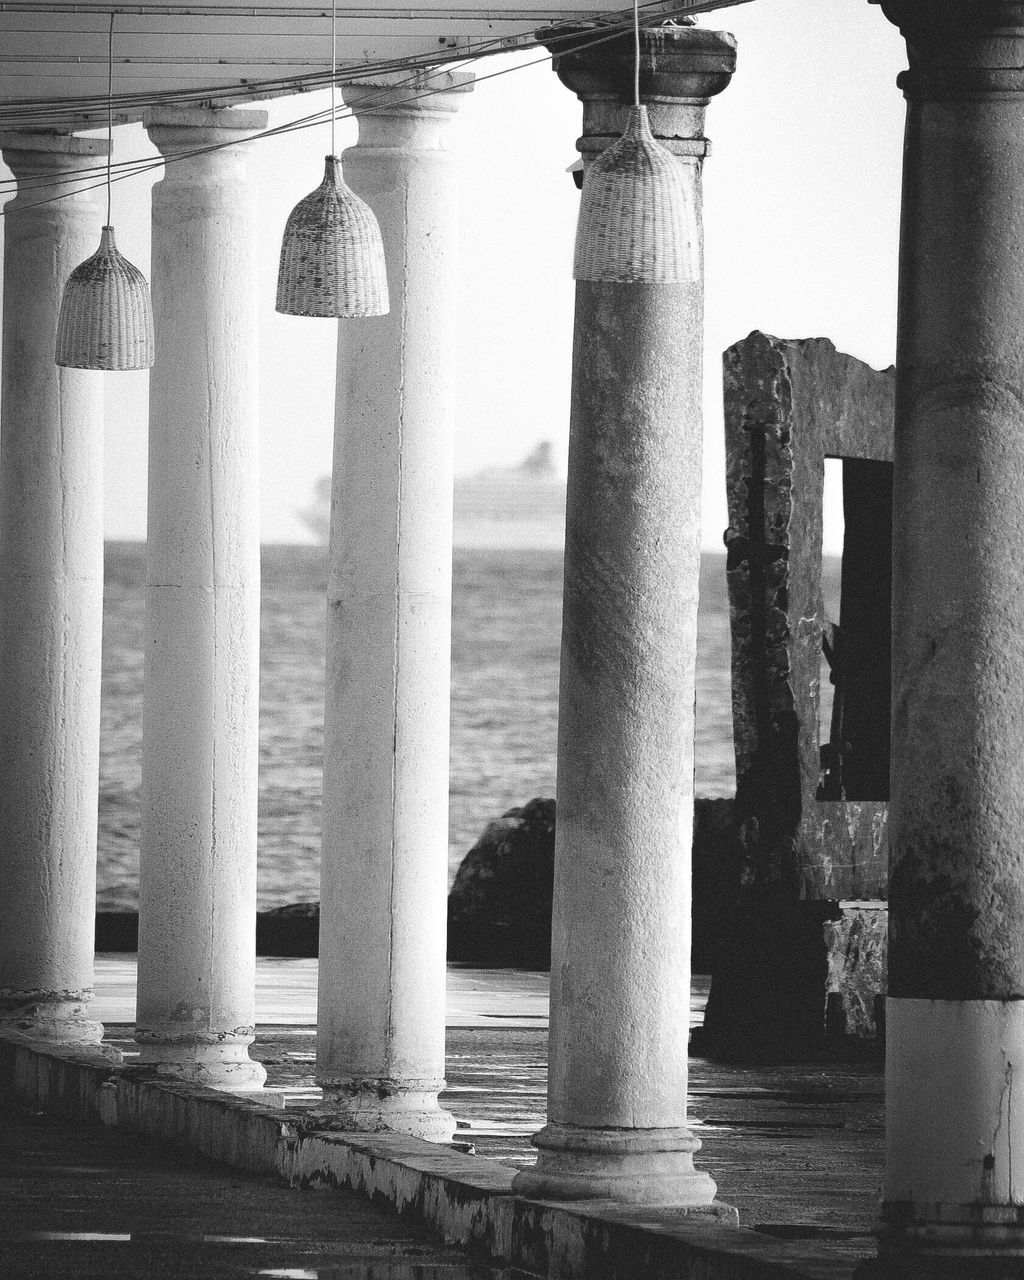 architectural column, architecture, built structure, water, colonnade, in a row, no people, day, building, the past, history, building exterior, outdoors, nature, travel destinations, connection, strength, arcade, sea, balustrade